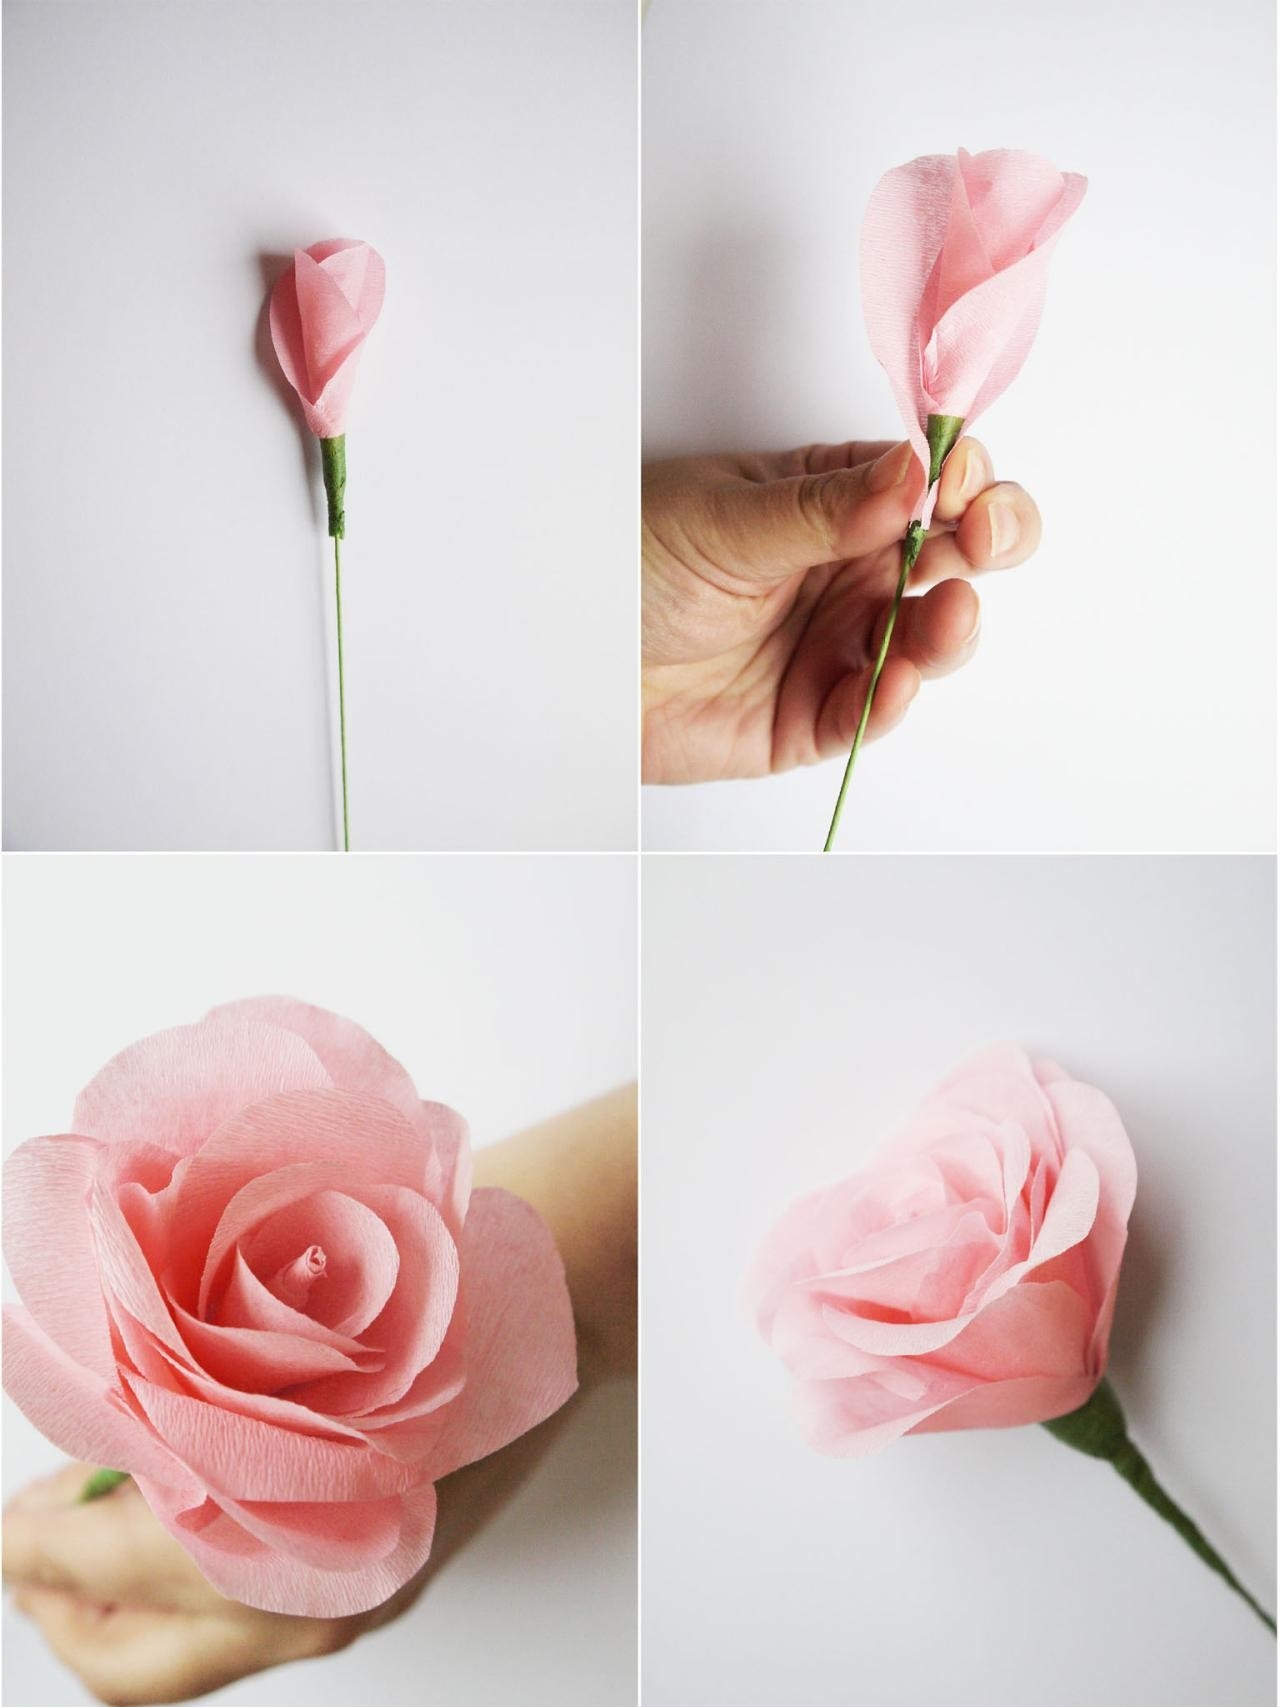 How To Make Paper Flowers For A Wedding Bouquet | Hgtv within How To Make Paper Roses Step By Step With Pictures 29076